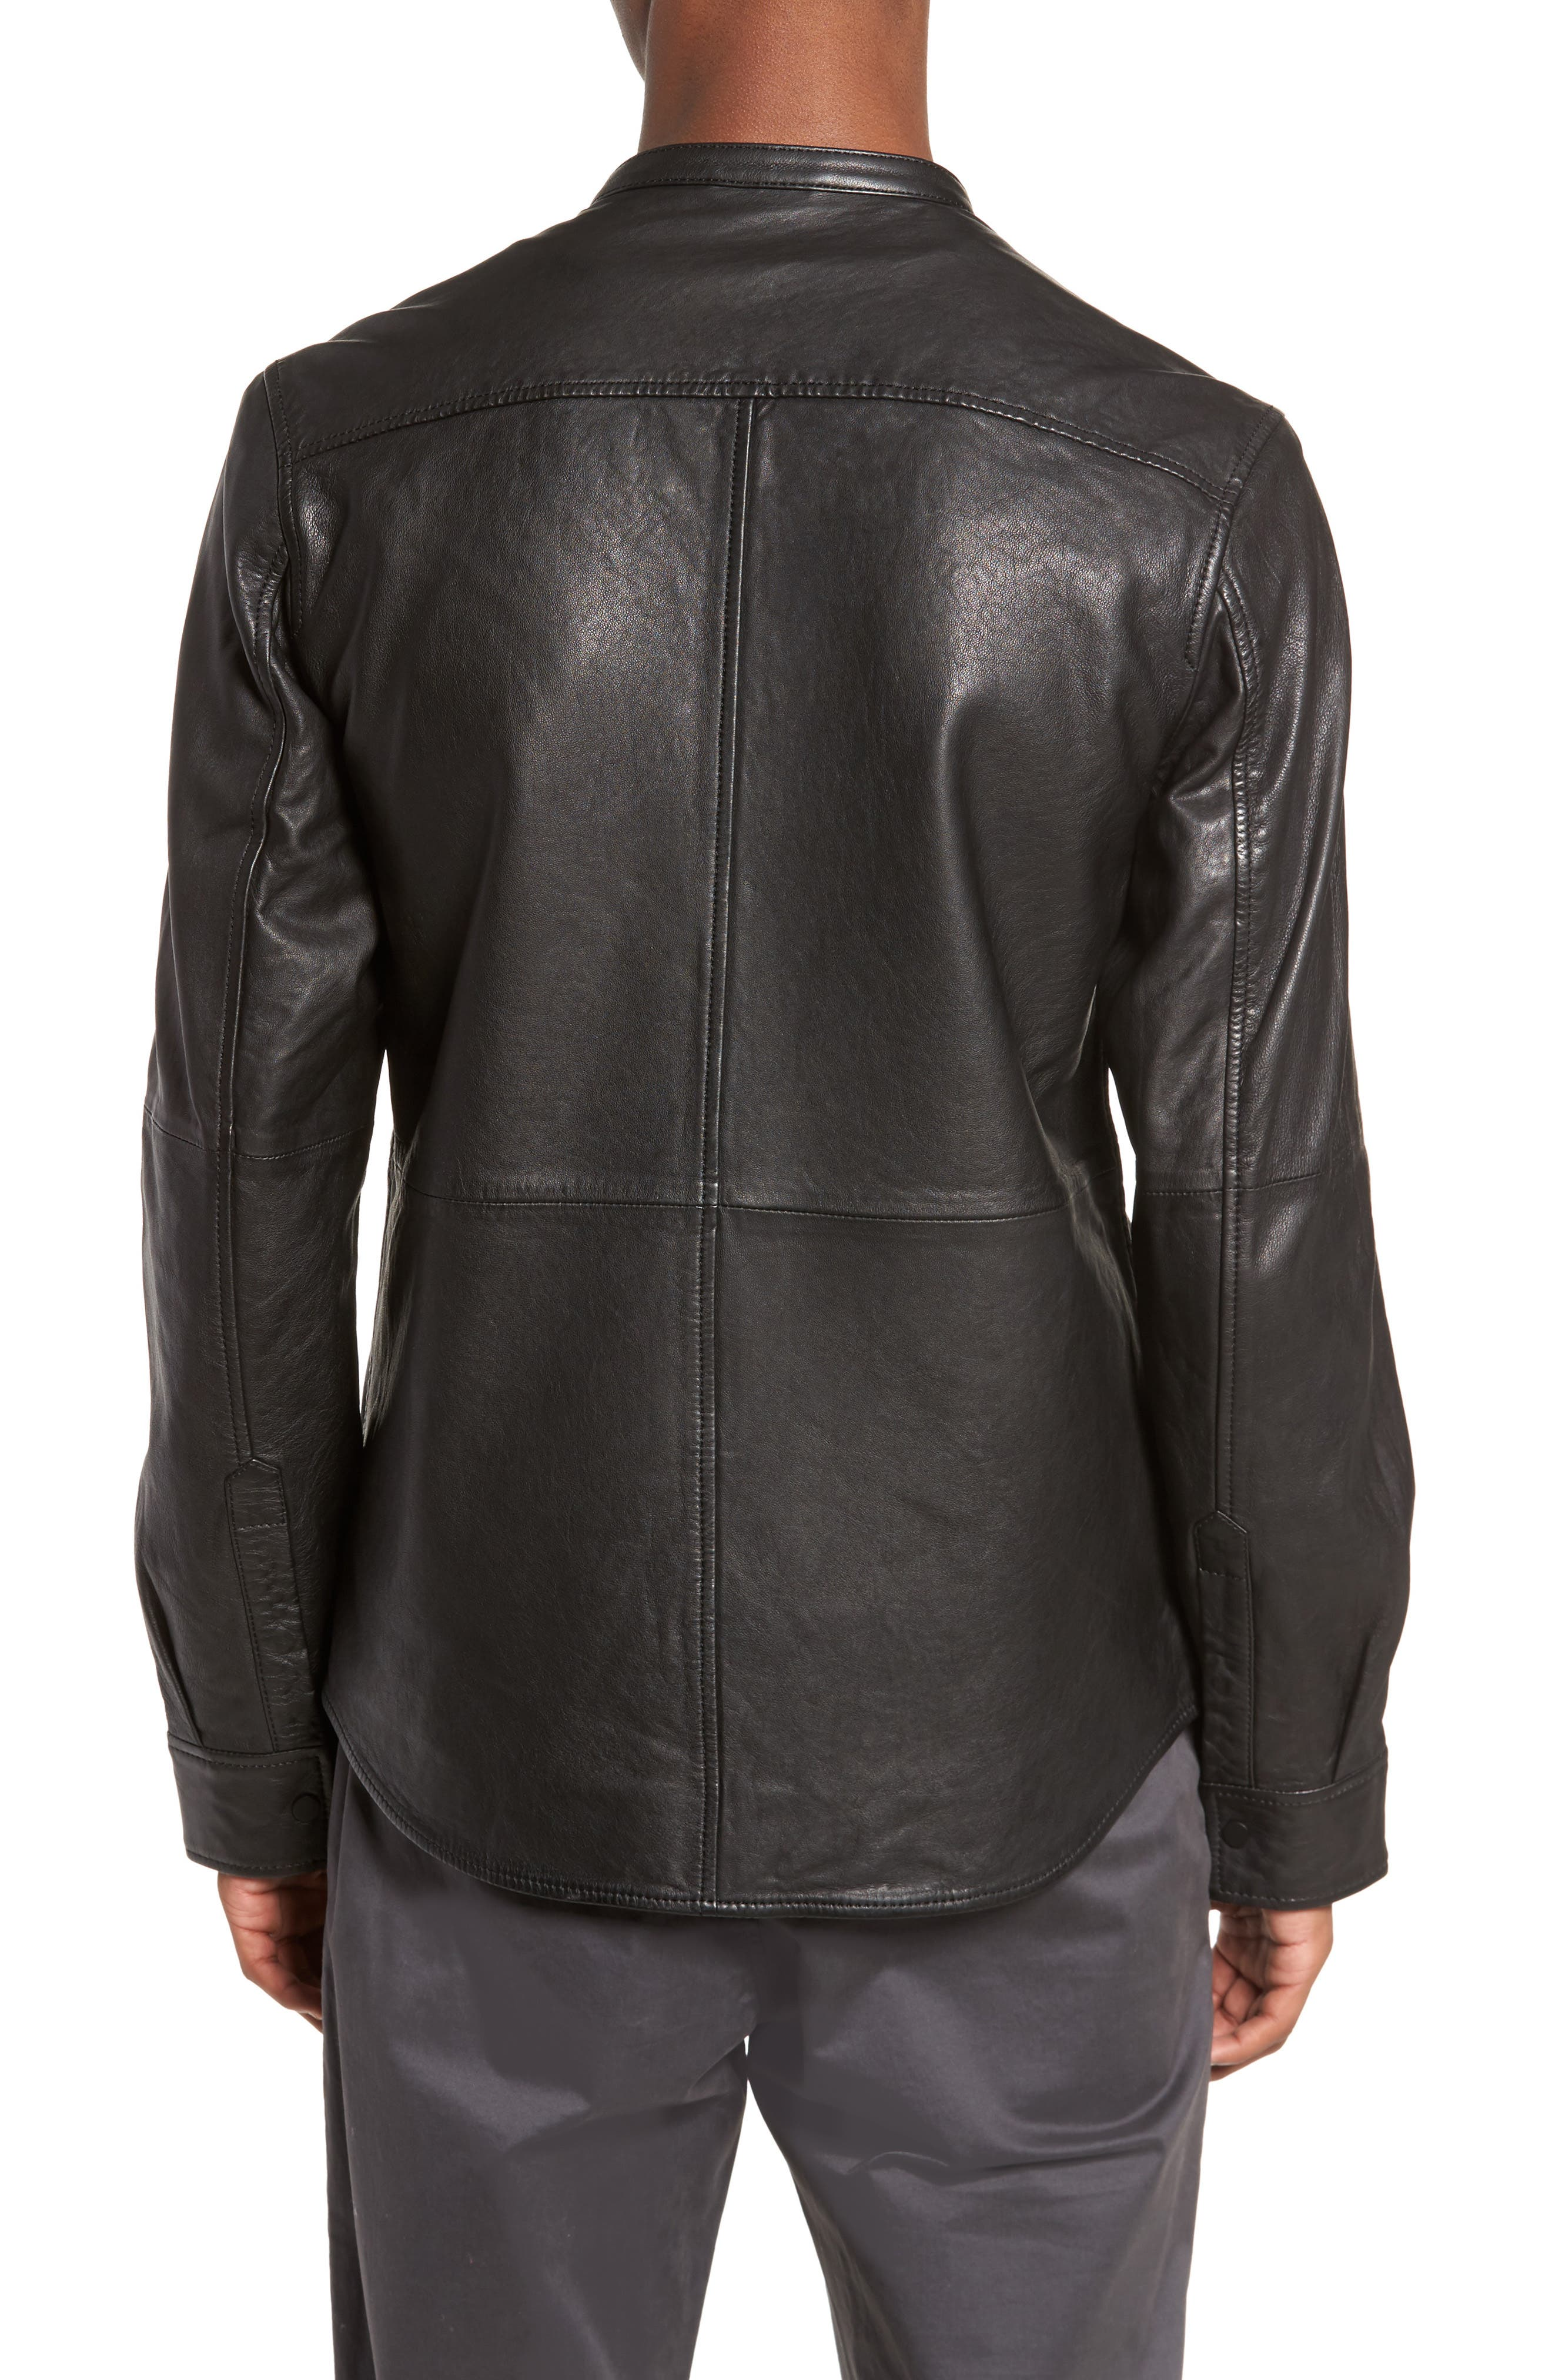 Atwater Leather Shirt Jacket,                             Alternate thumbnail 2, color,                             Black